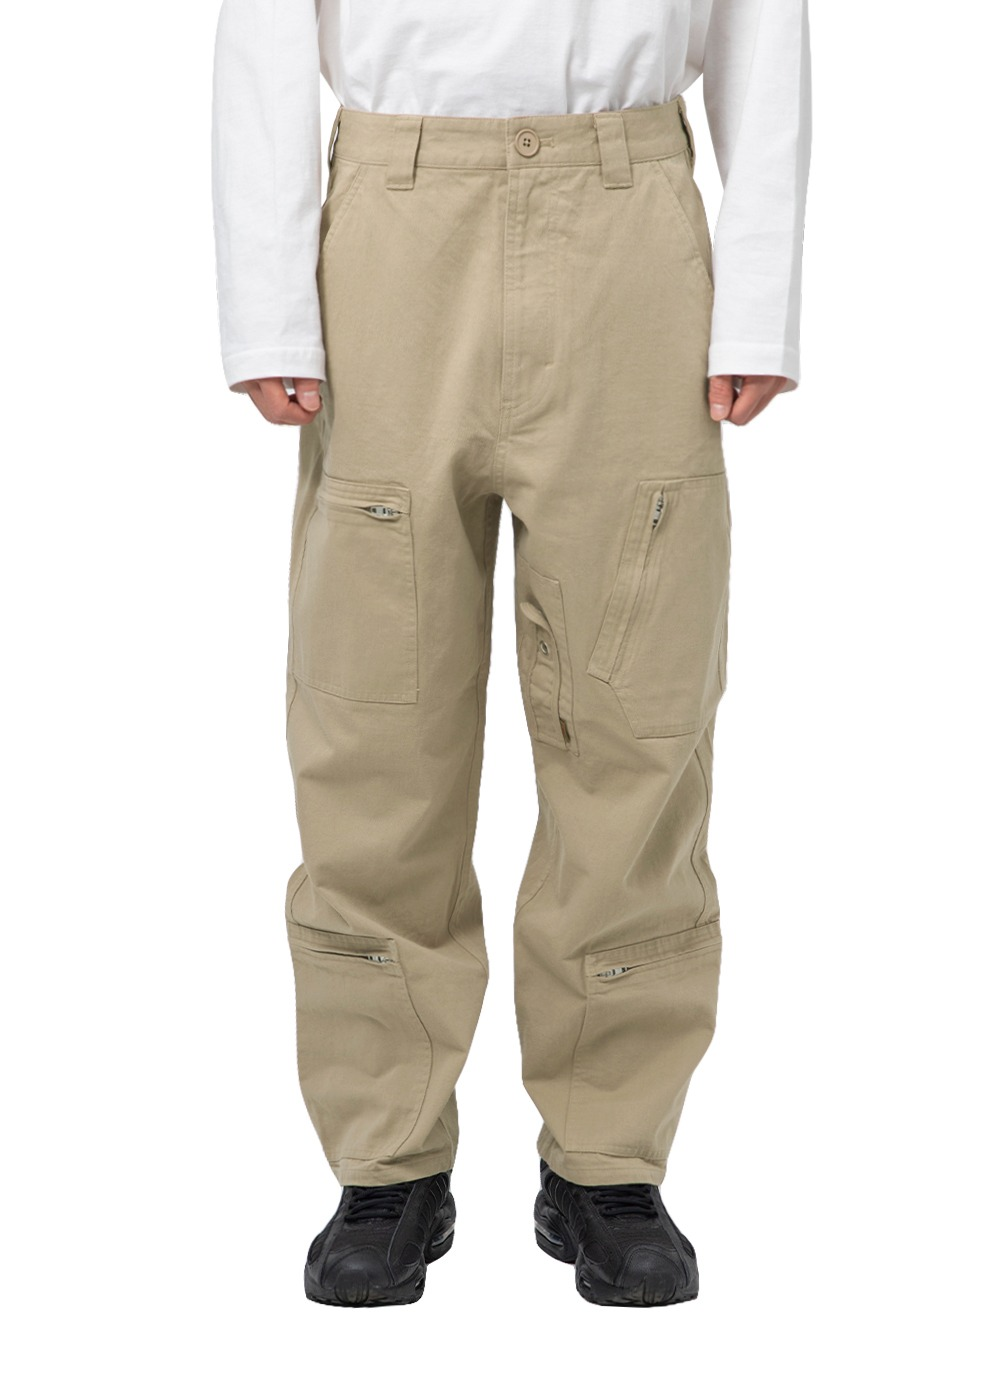 LMC BDG FLIGHT PANTS beige